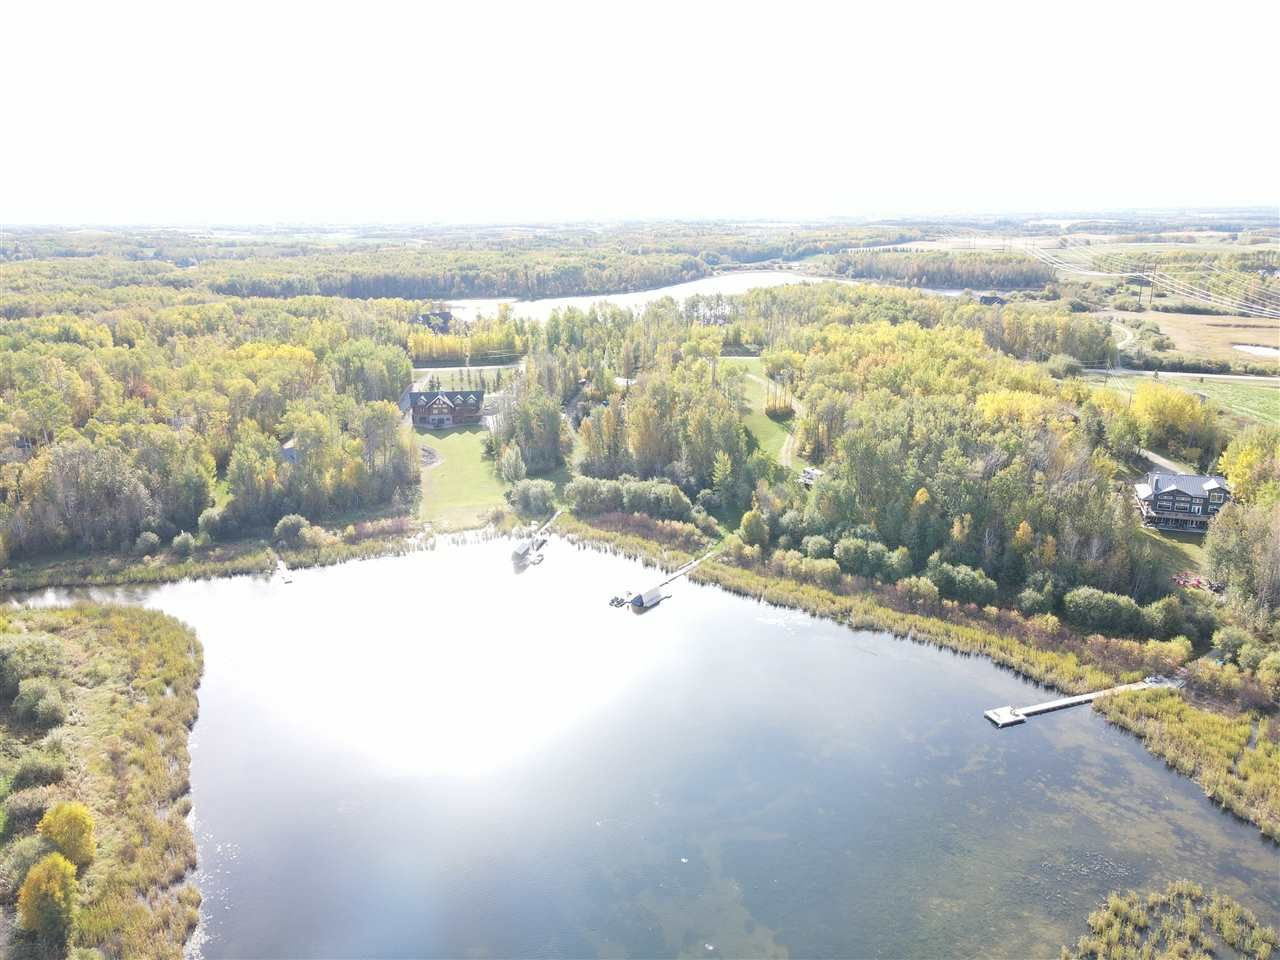 Main Photo: 10 52111 RGE RD 25: Rural Parkland County Rural Land/Vacant Lot for sale : MLS®# E4216524